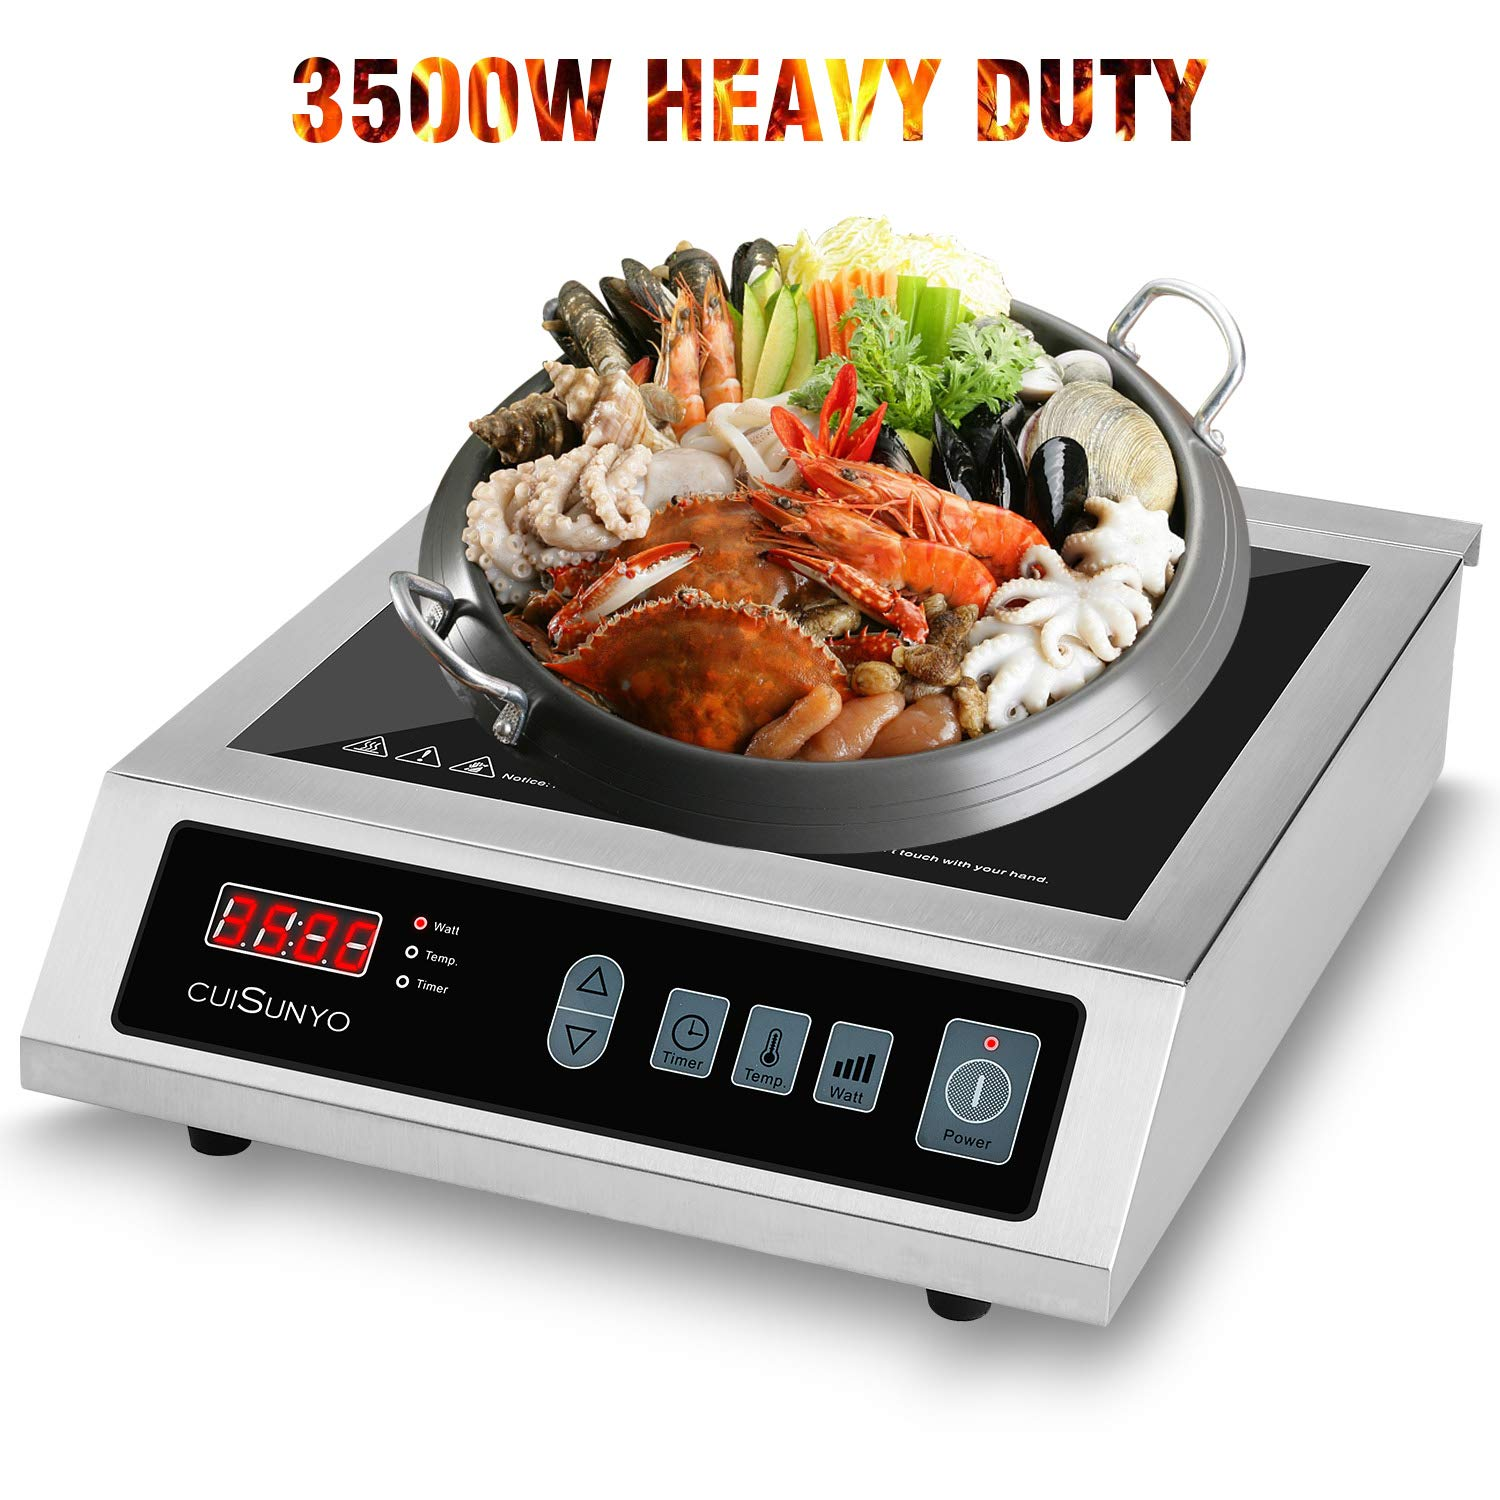 CUISUNYO Commercial Induction Cooktop,3500W Hi-power Eletric Countertop Burner, Digital Sensor and Kids Safety Lock, 8 Temperature Levels Suitable for Cast Iron Cookware-240V/60Hz